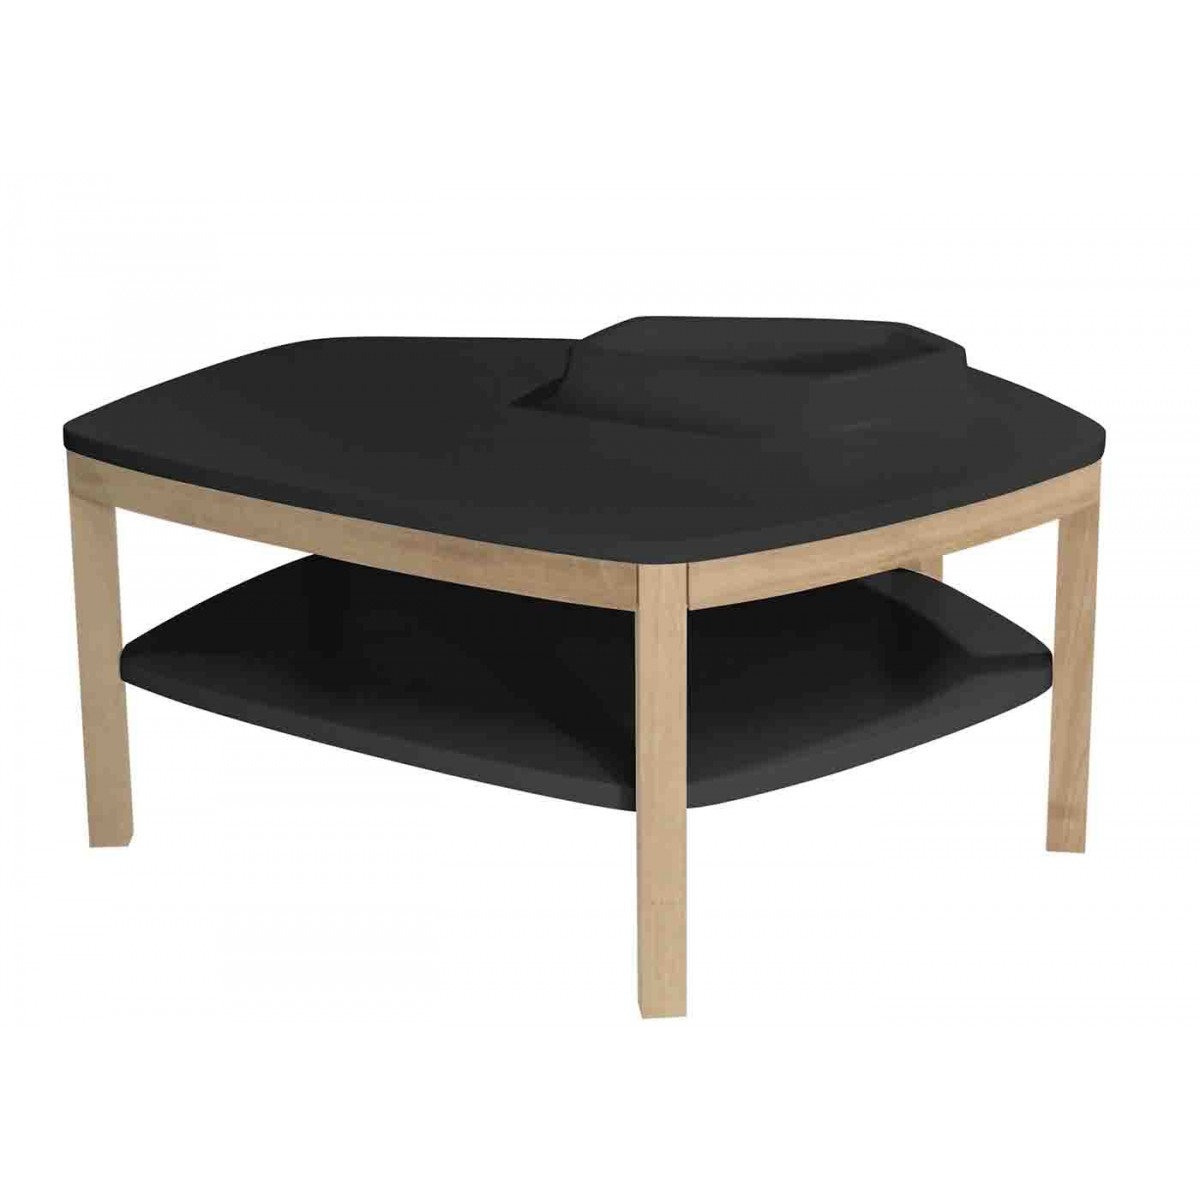 table basse volcane pied original design avec vasque. Black Bedroom Furniture Sets. Home Design Ideas